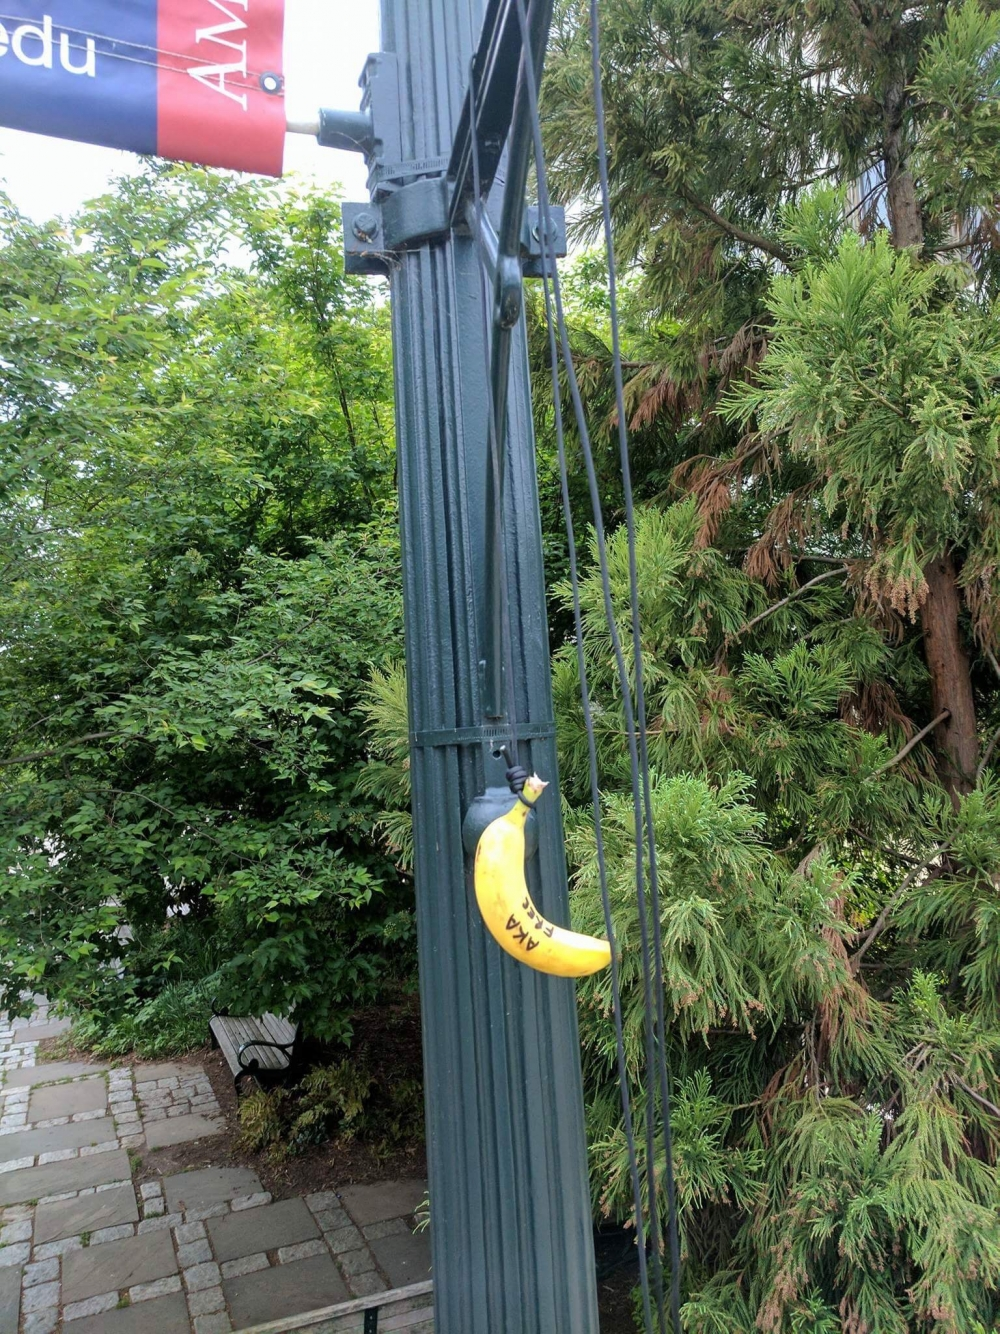 Public Safety investigating racist incident involving bananas